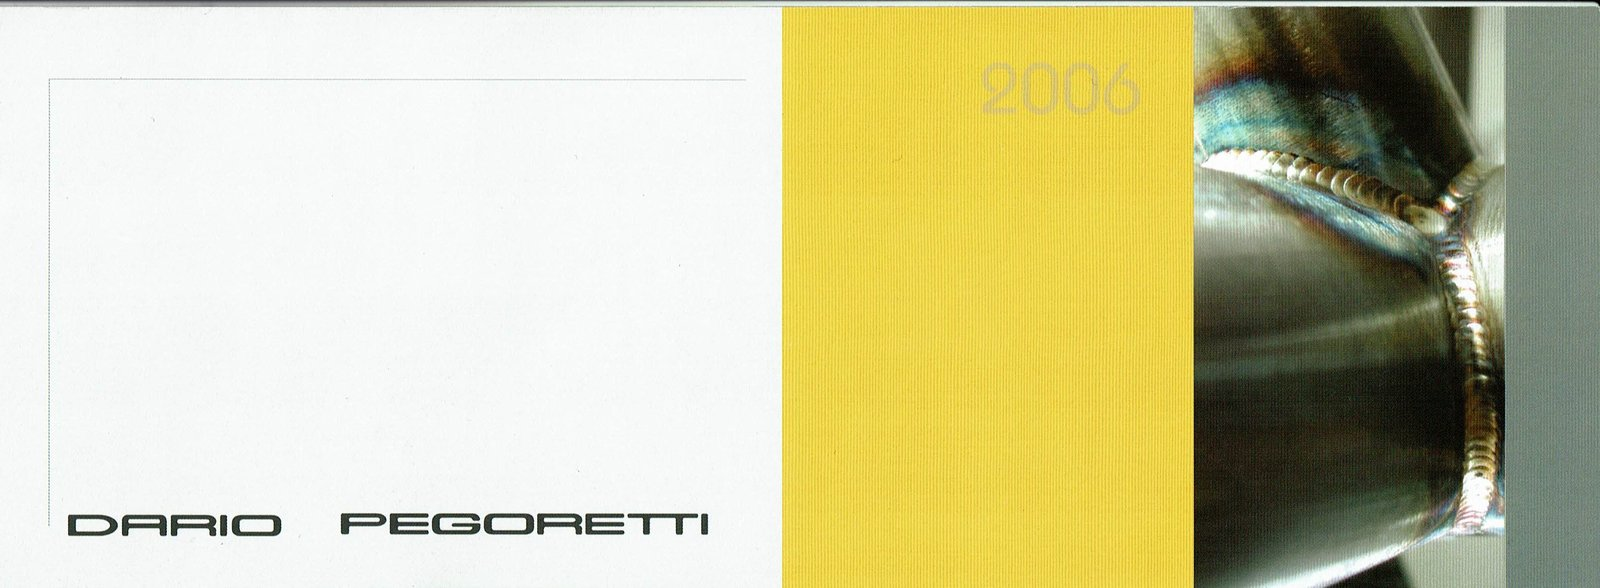 Link to scanned image of the 2006 Pegoretti catalog